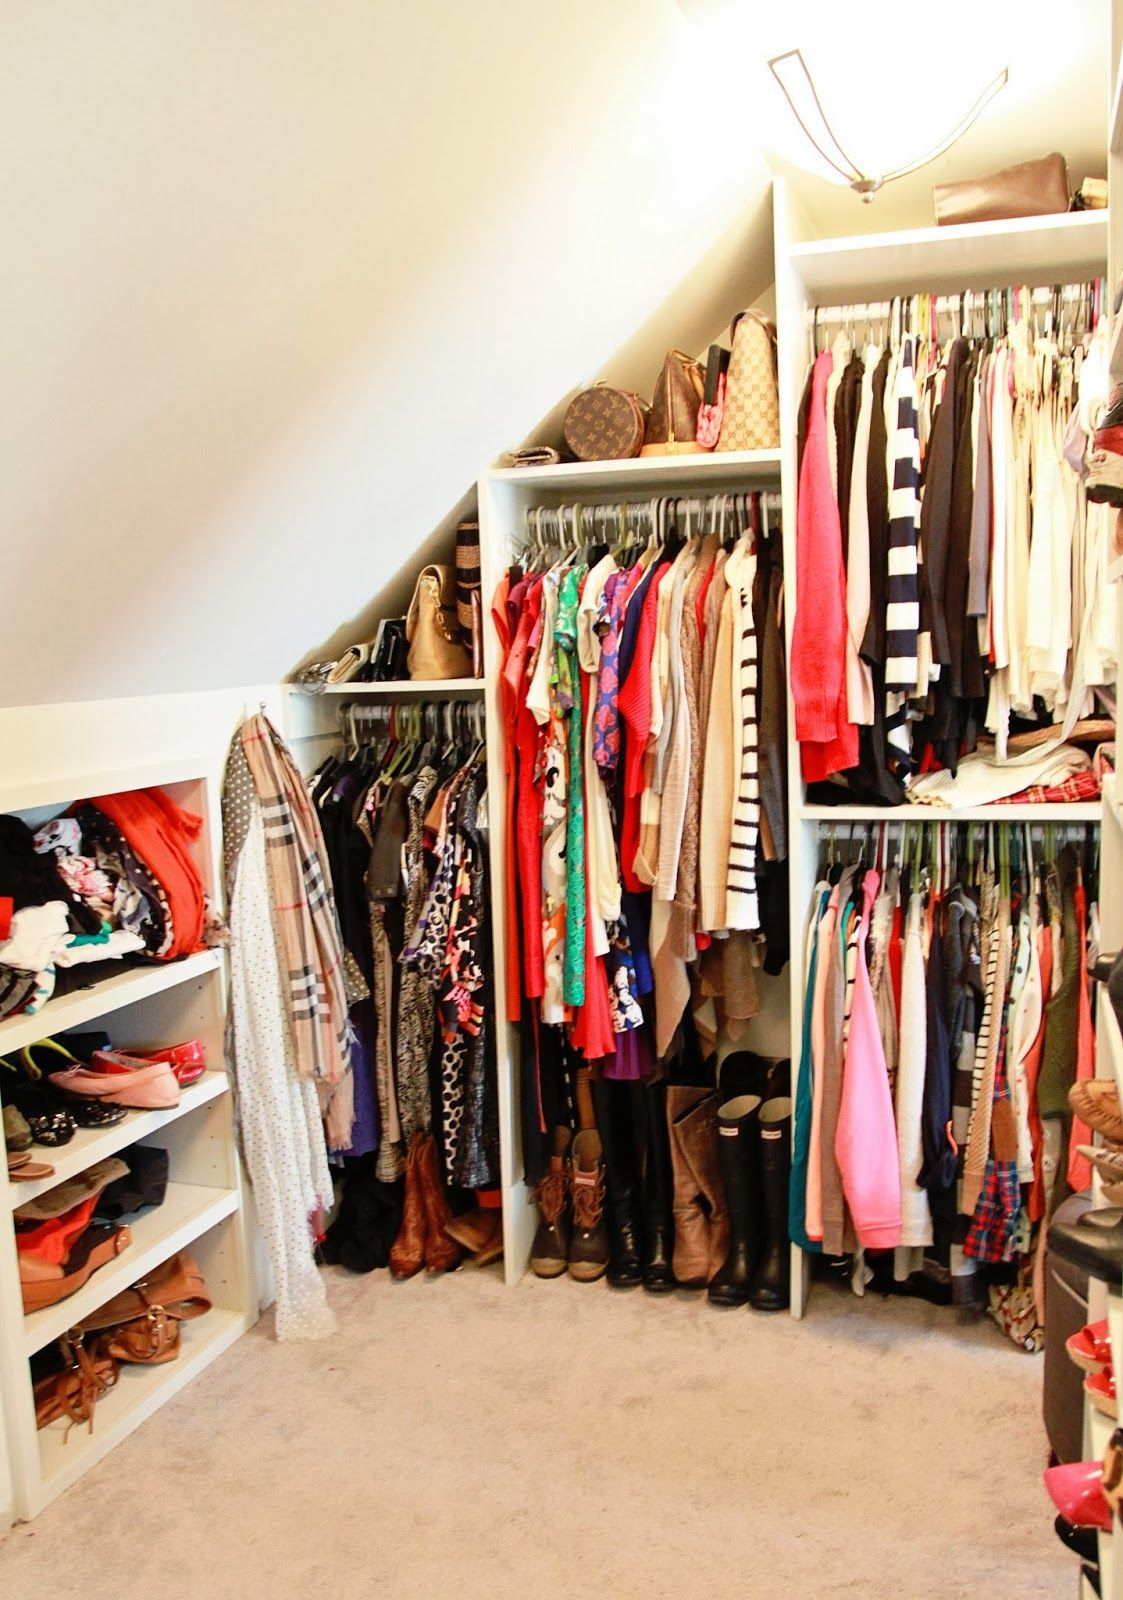 Amazing Does Anyone Else Have Panic Attacks Just Thinking About What To Wear In  Photos? I